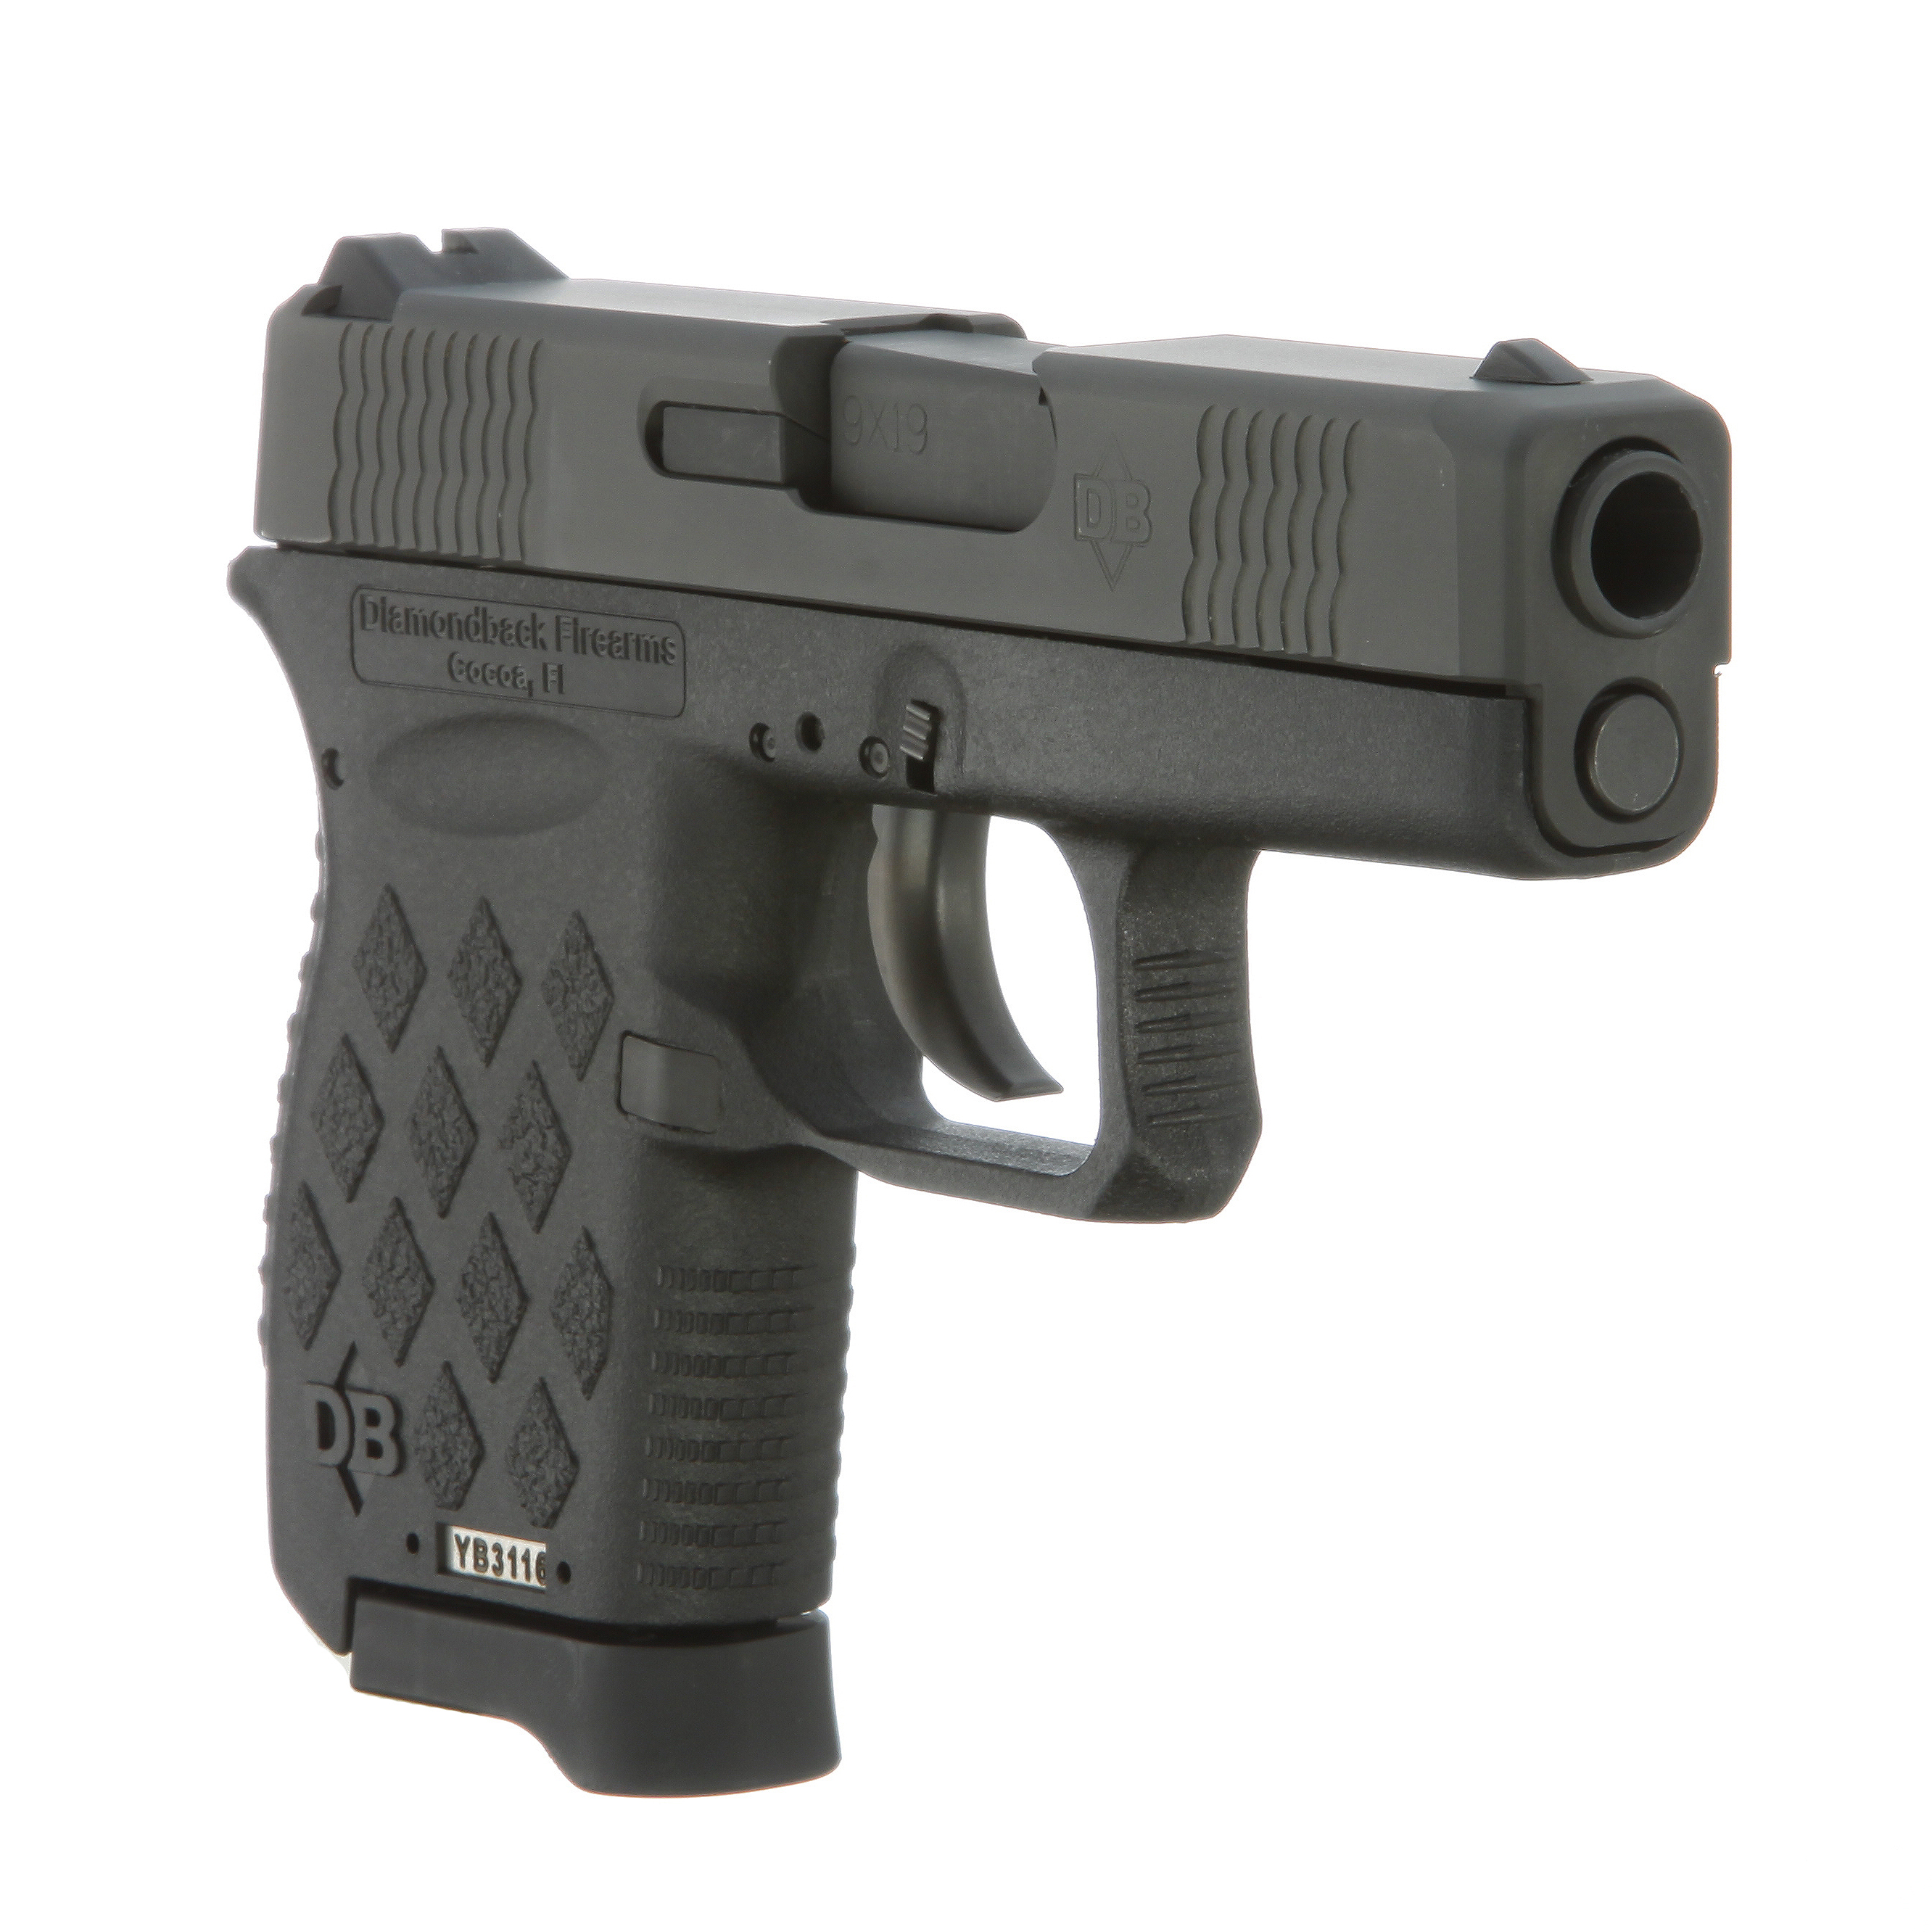 Diamondback DB9 9mm Concealed Carry Pro